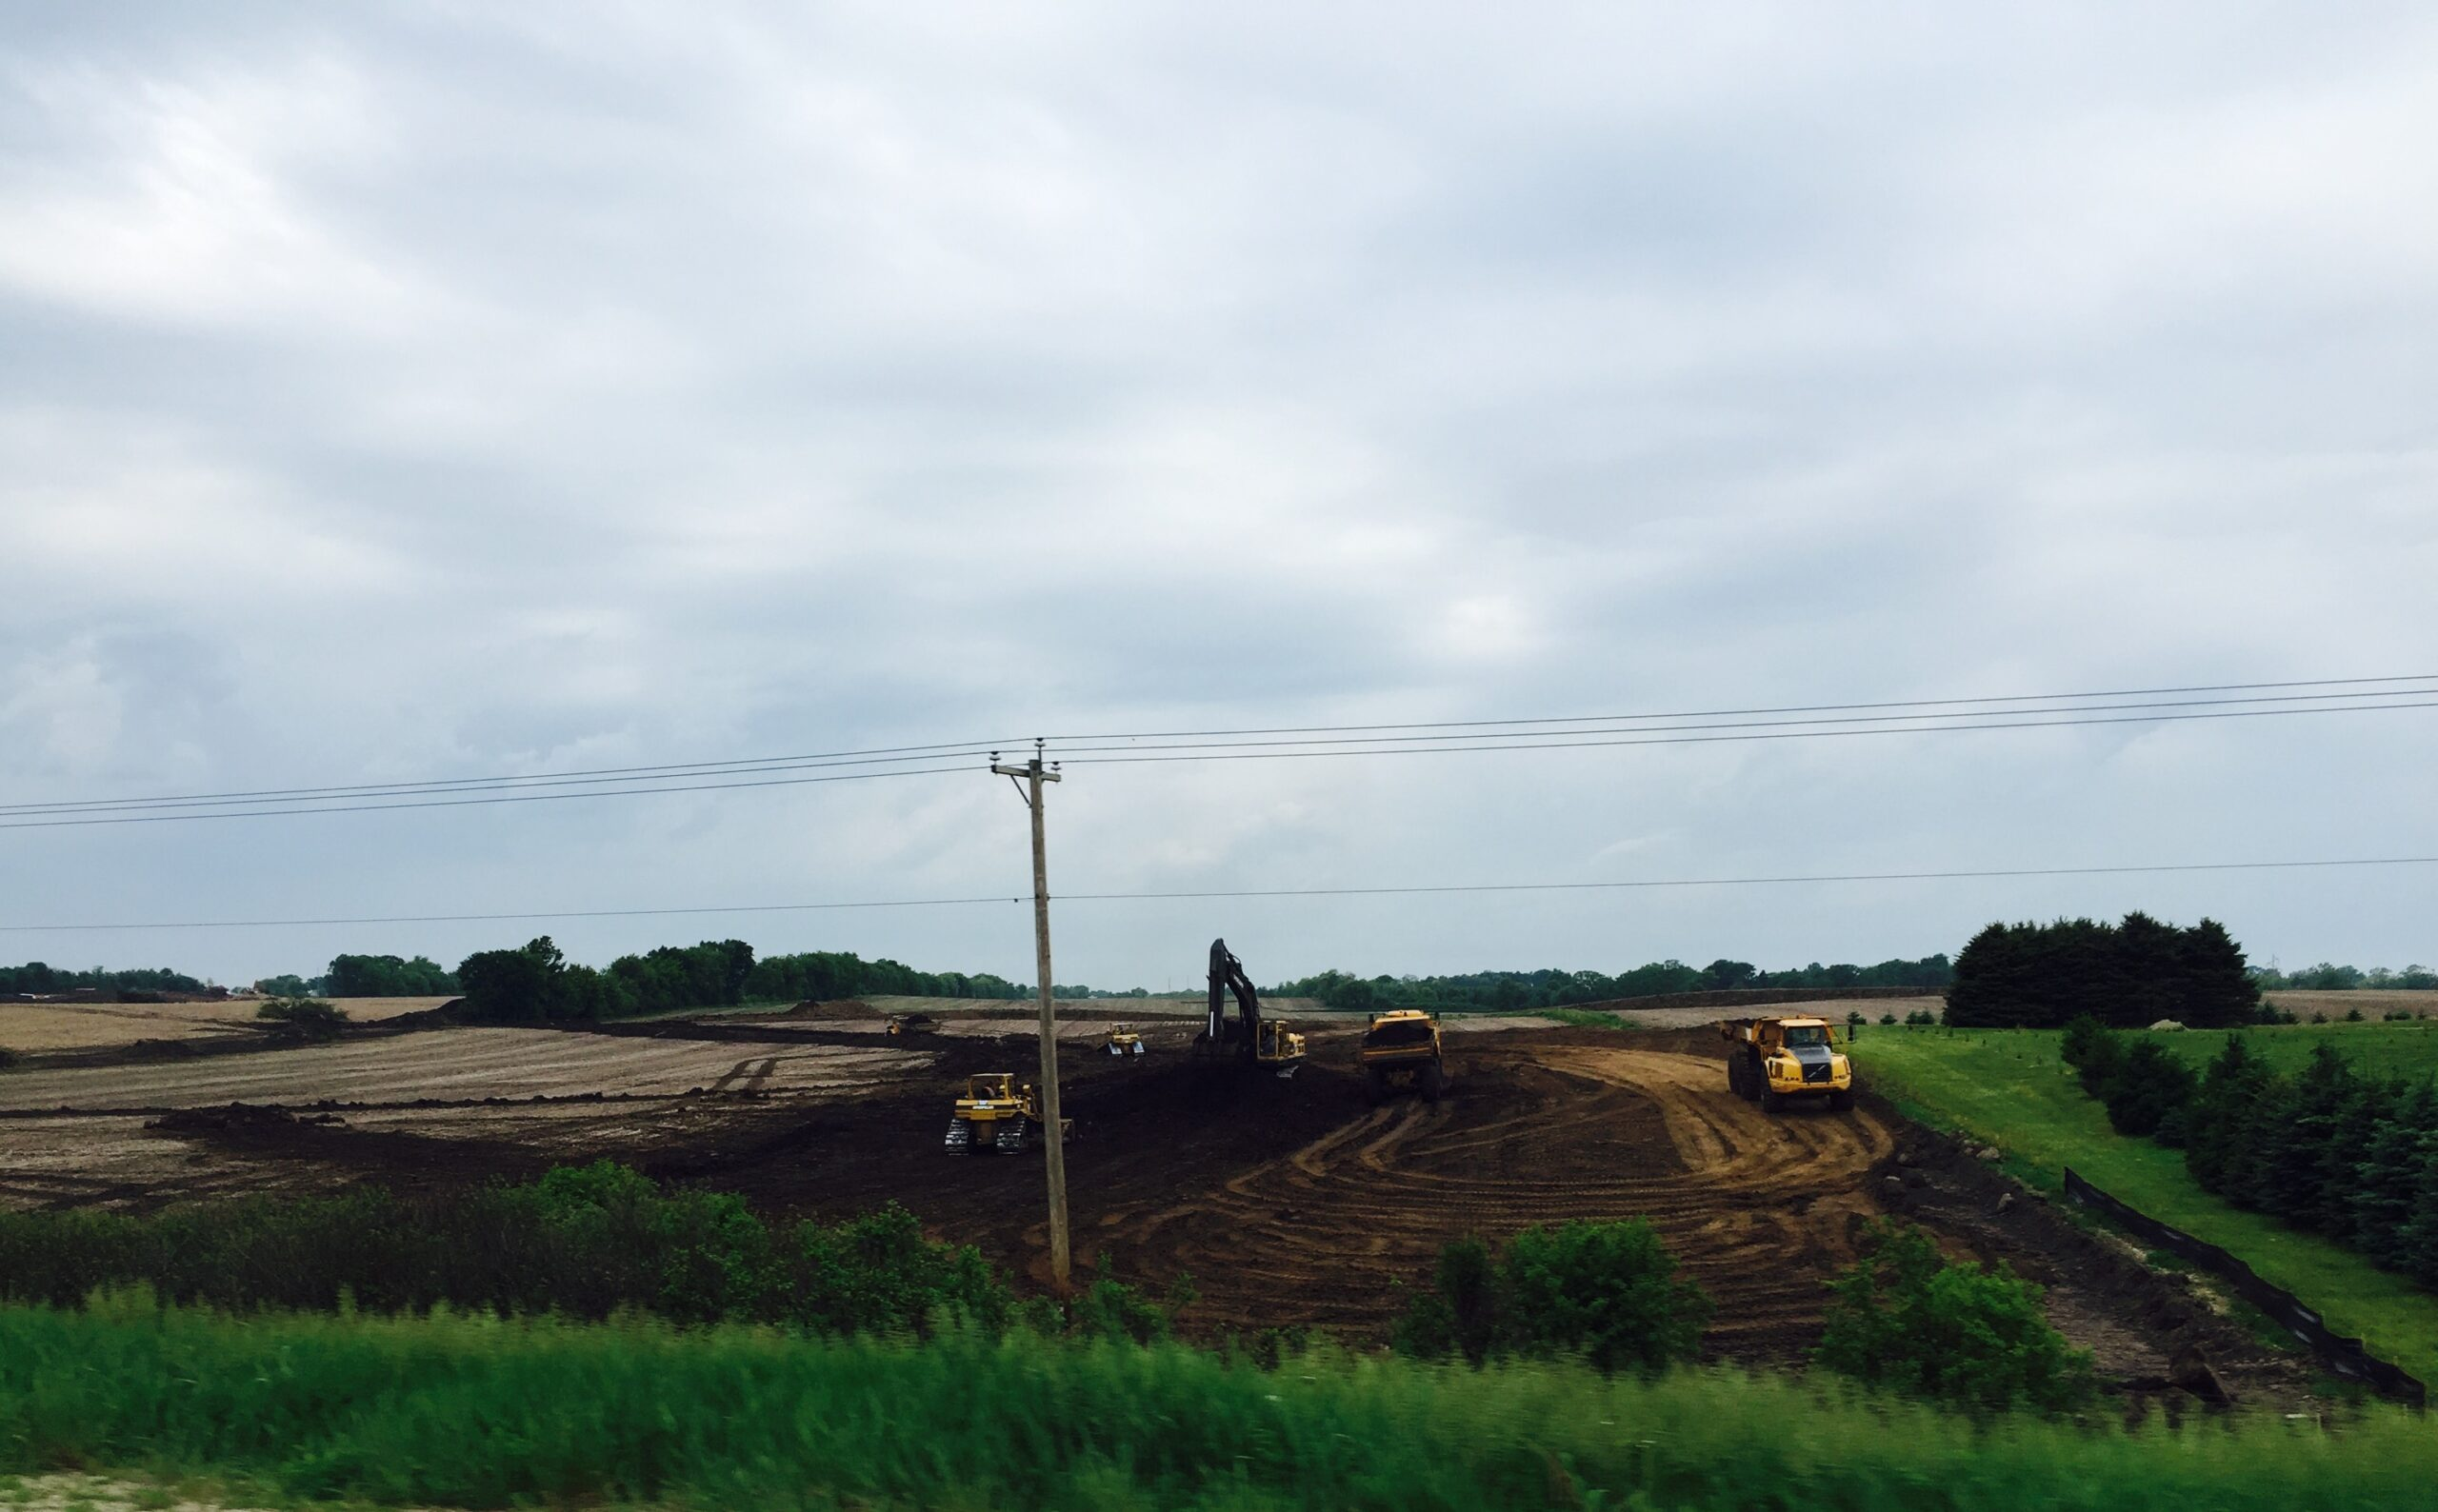 Construction site at Beaver Dam Cold Storage